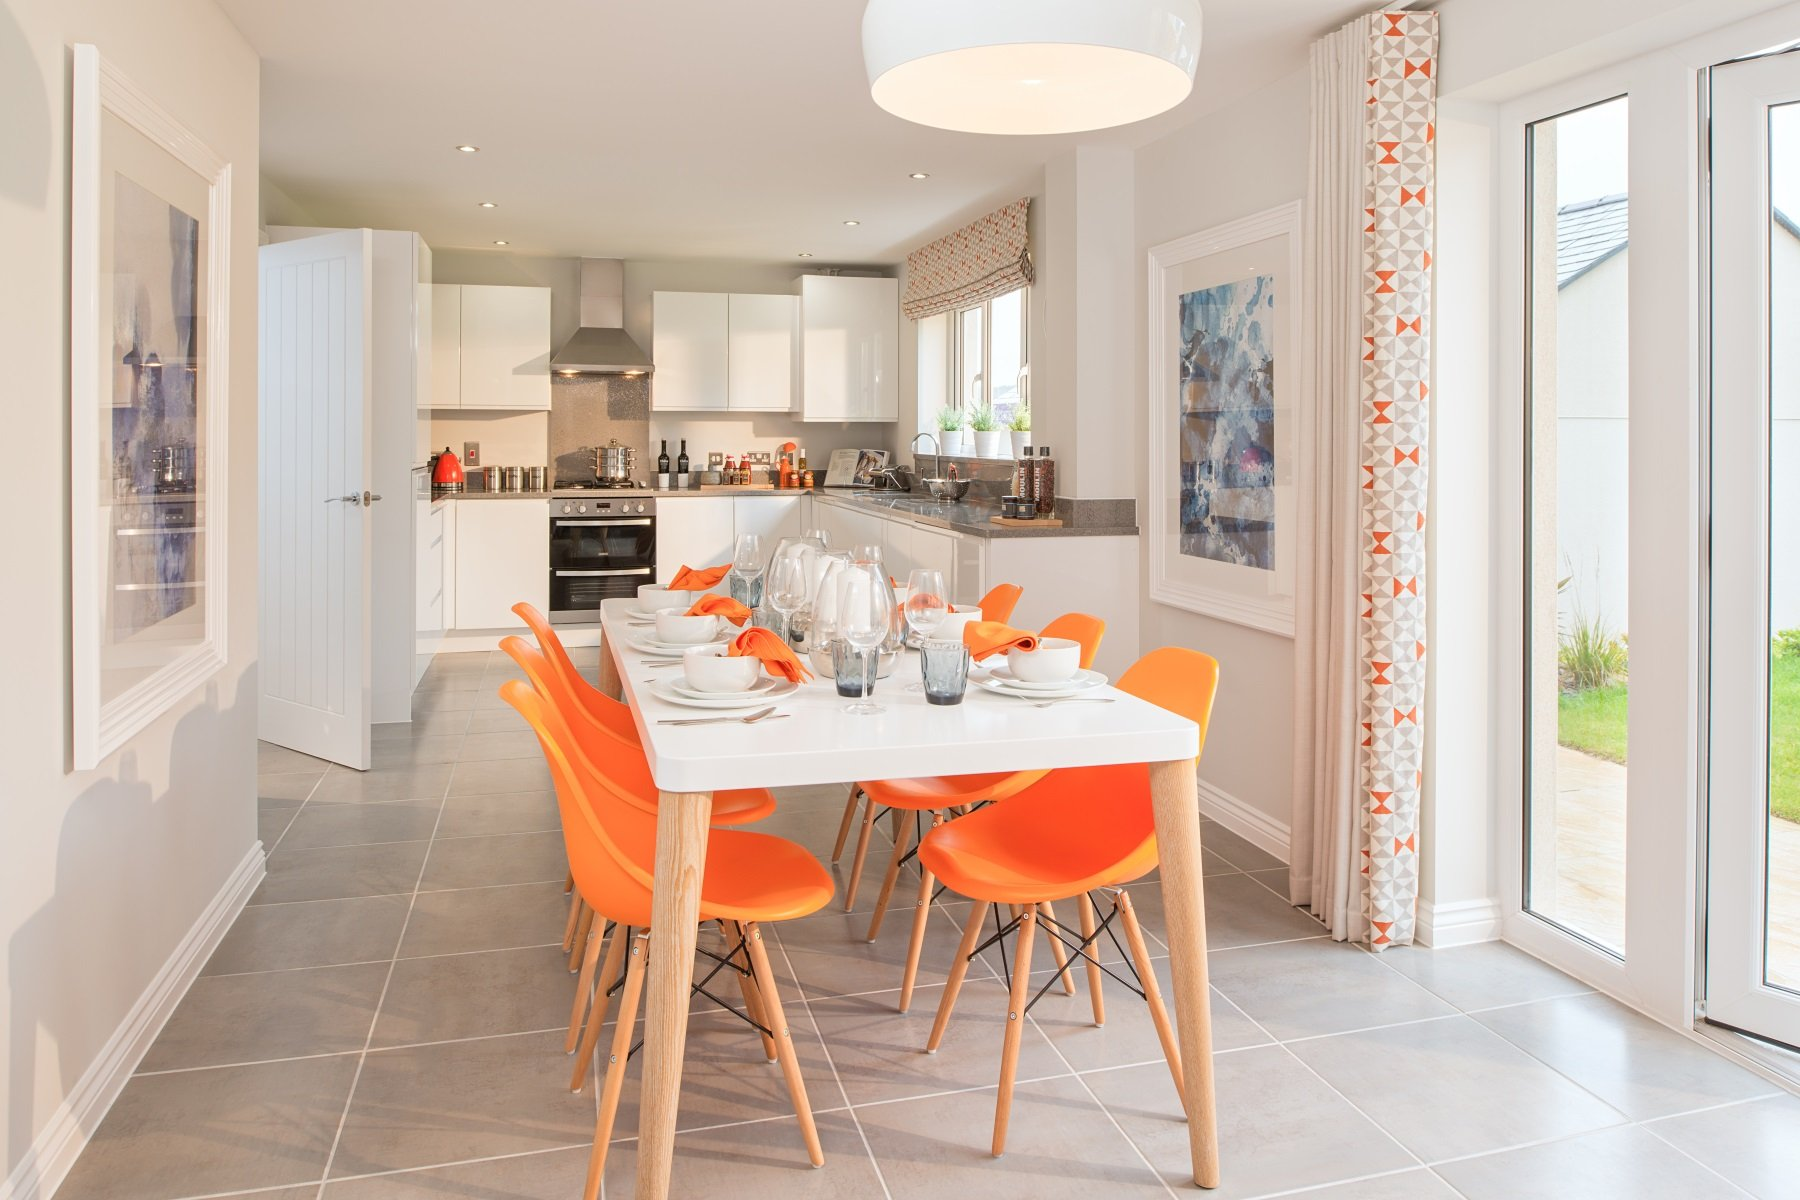 Taylor Wimpey Exeter - Hele Park - Shelford example kitchen 2